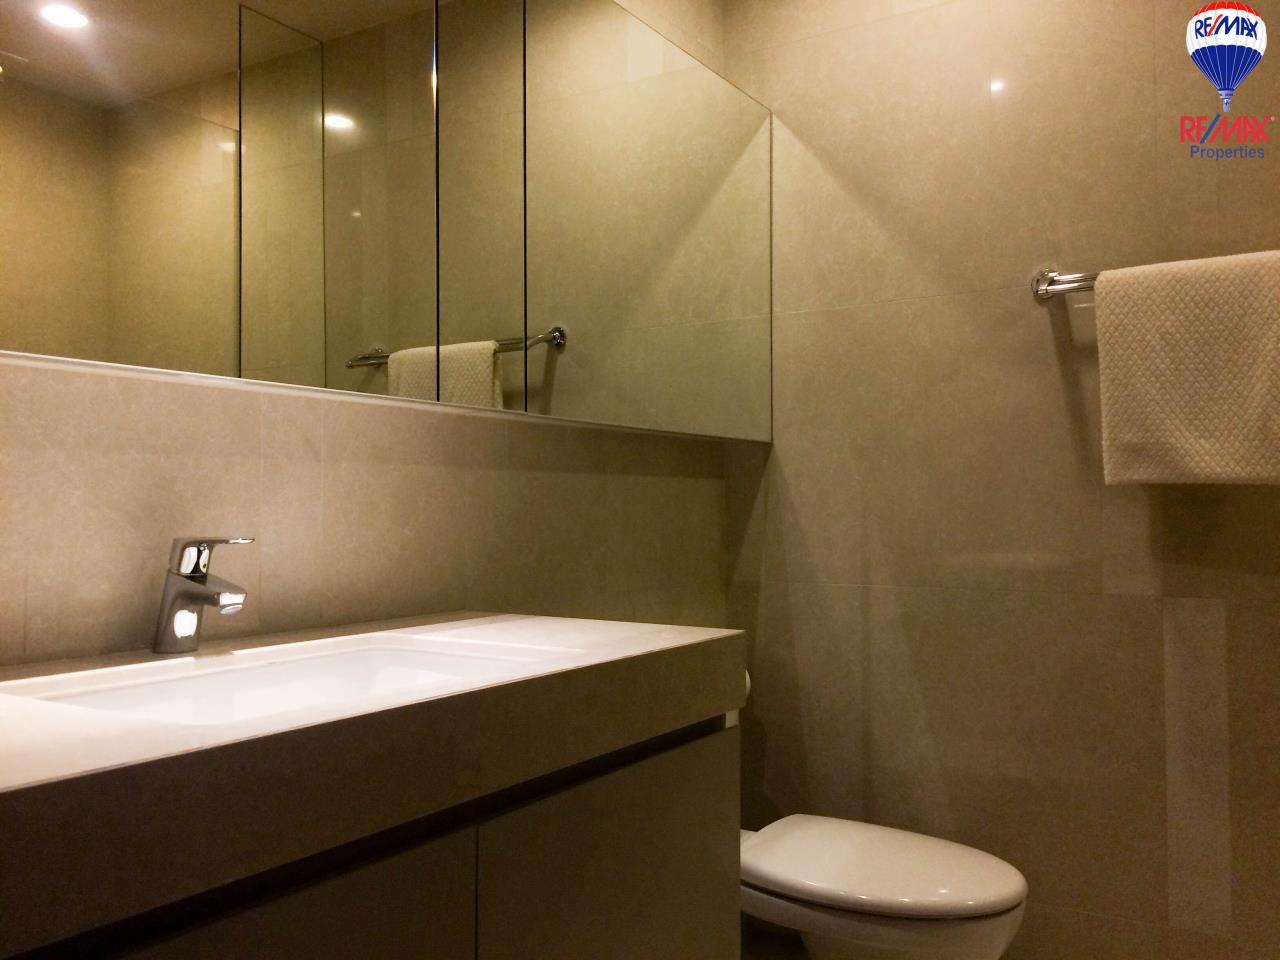 RE/MAX Properties Agency's 2 Bedrooms 86 Sq.M. for rent in Quattro by Sansiri 15